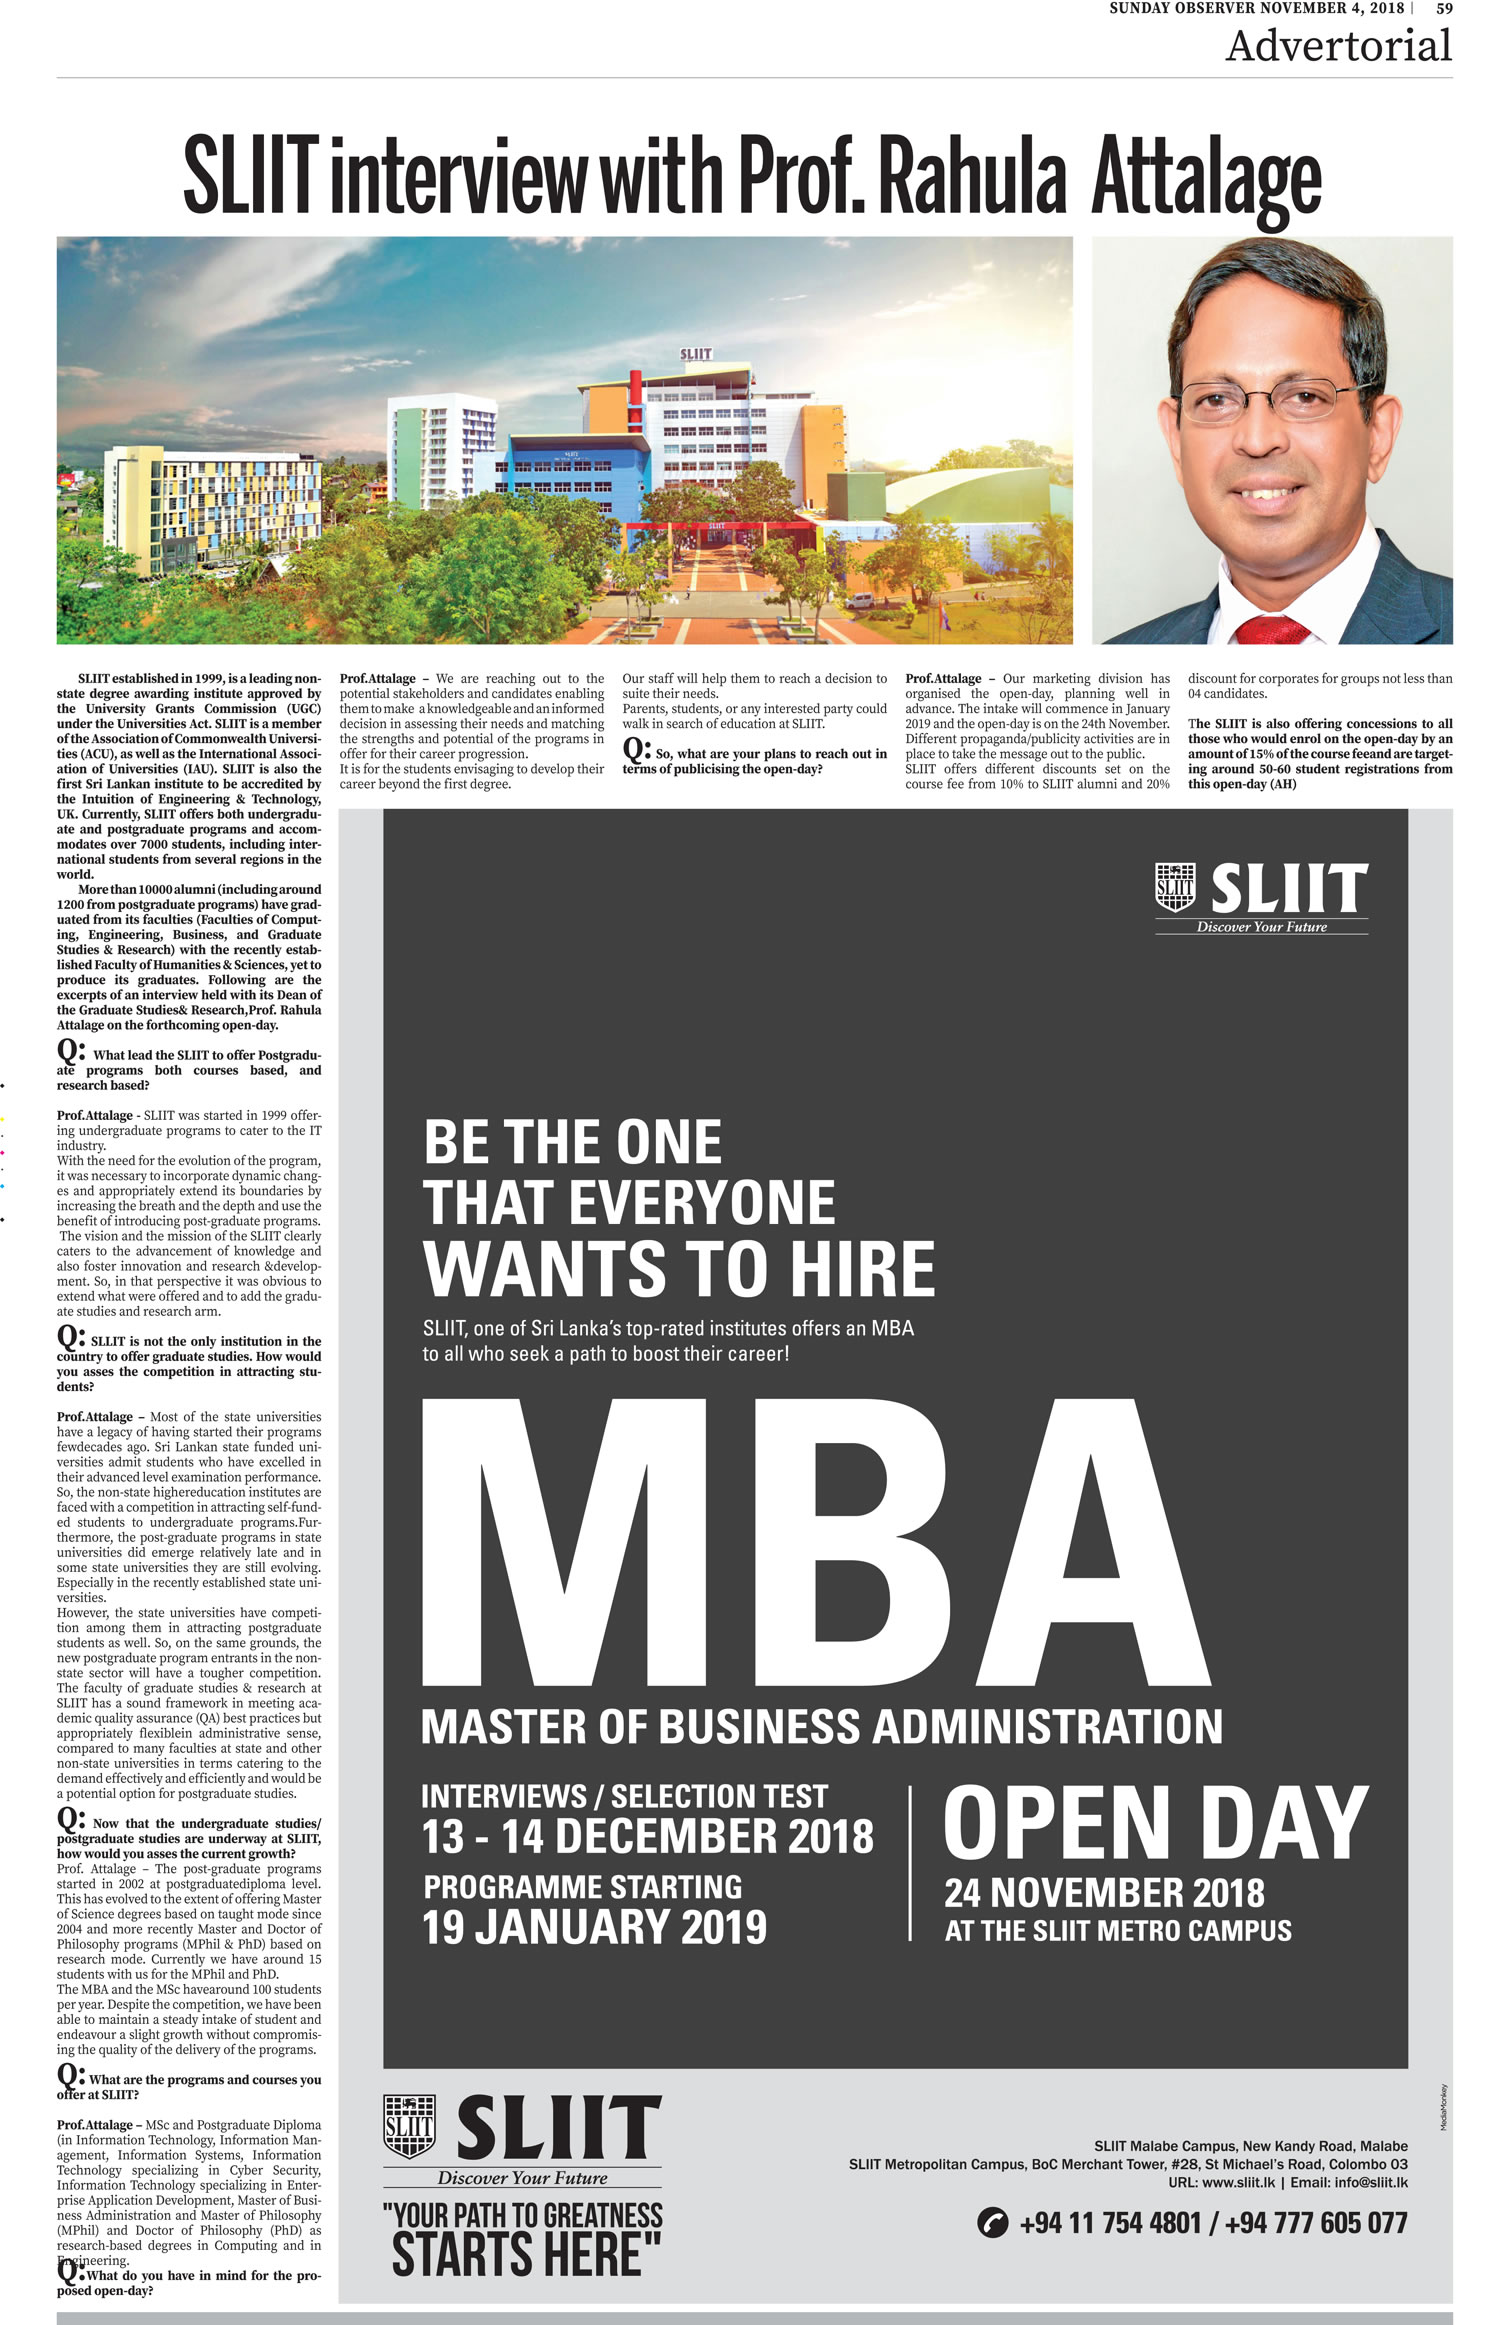 SLIIT-Interview-with-Prof.-Rahula-Attalage-Sunday-Observer-04.11.2018